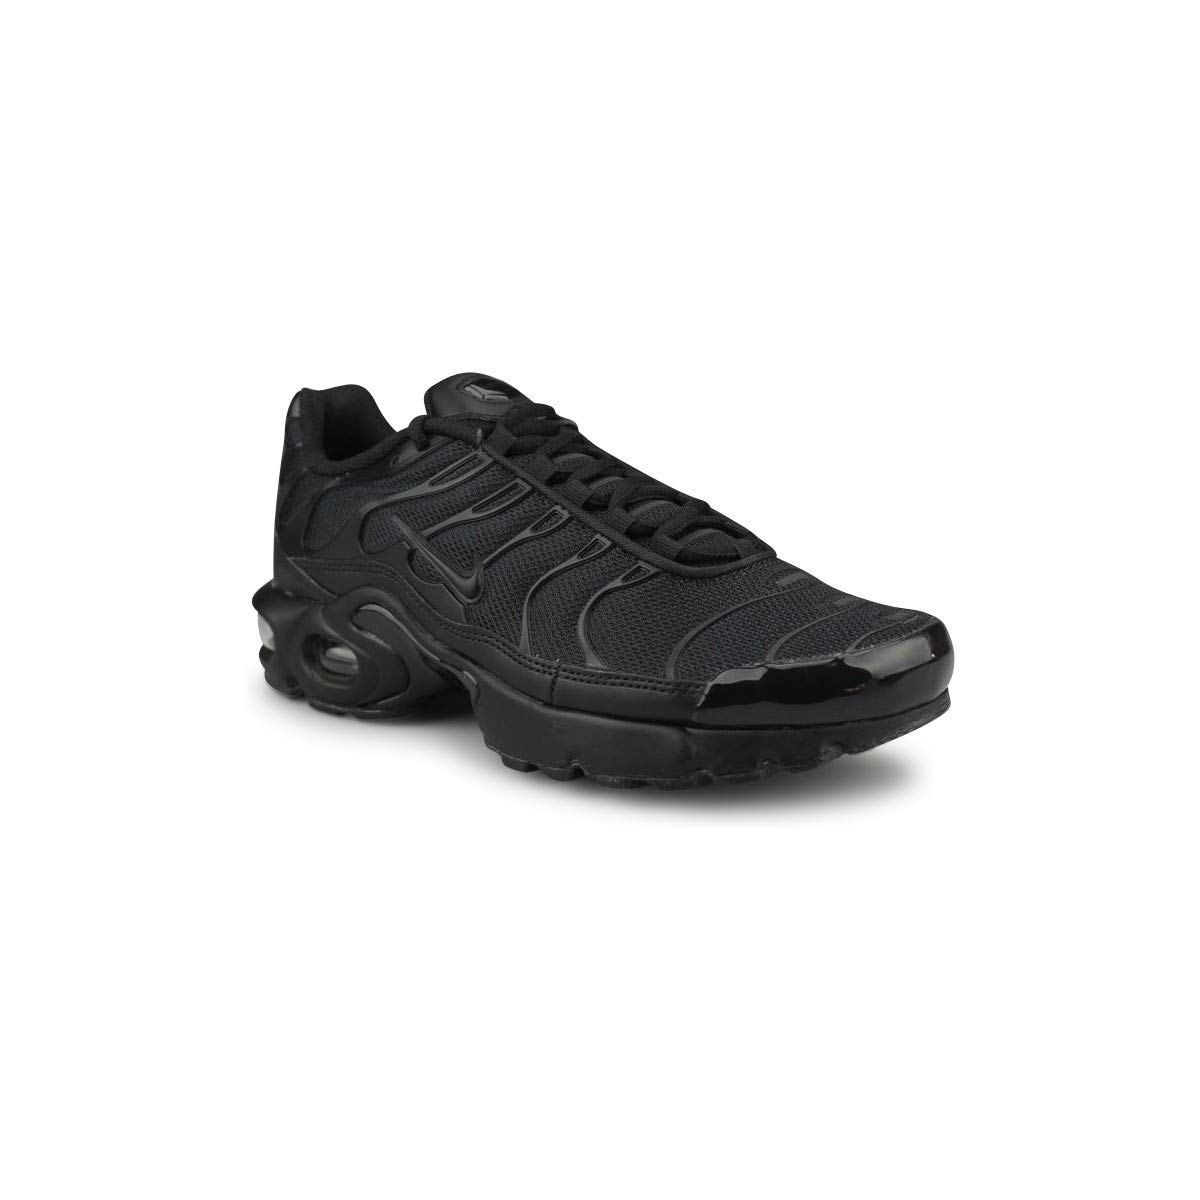 reputable site c94fc 0fc72 Amazon.com   Nike Air Max Plus TN (GS) Youth Sneaker   Sneakers